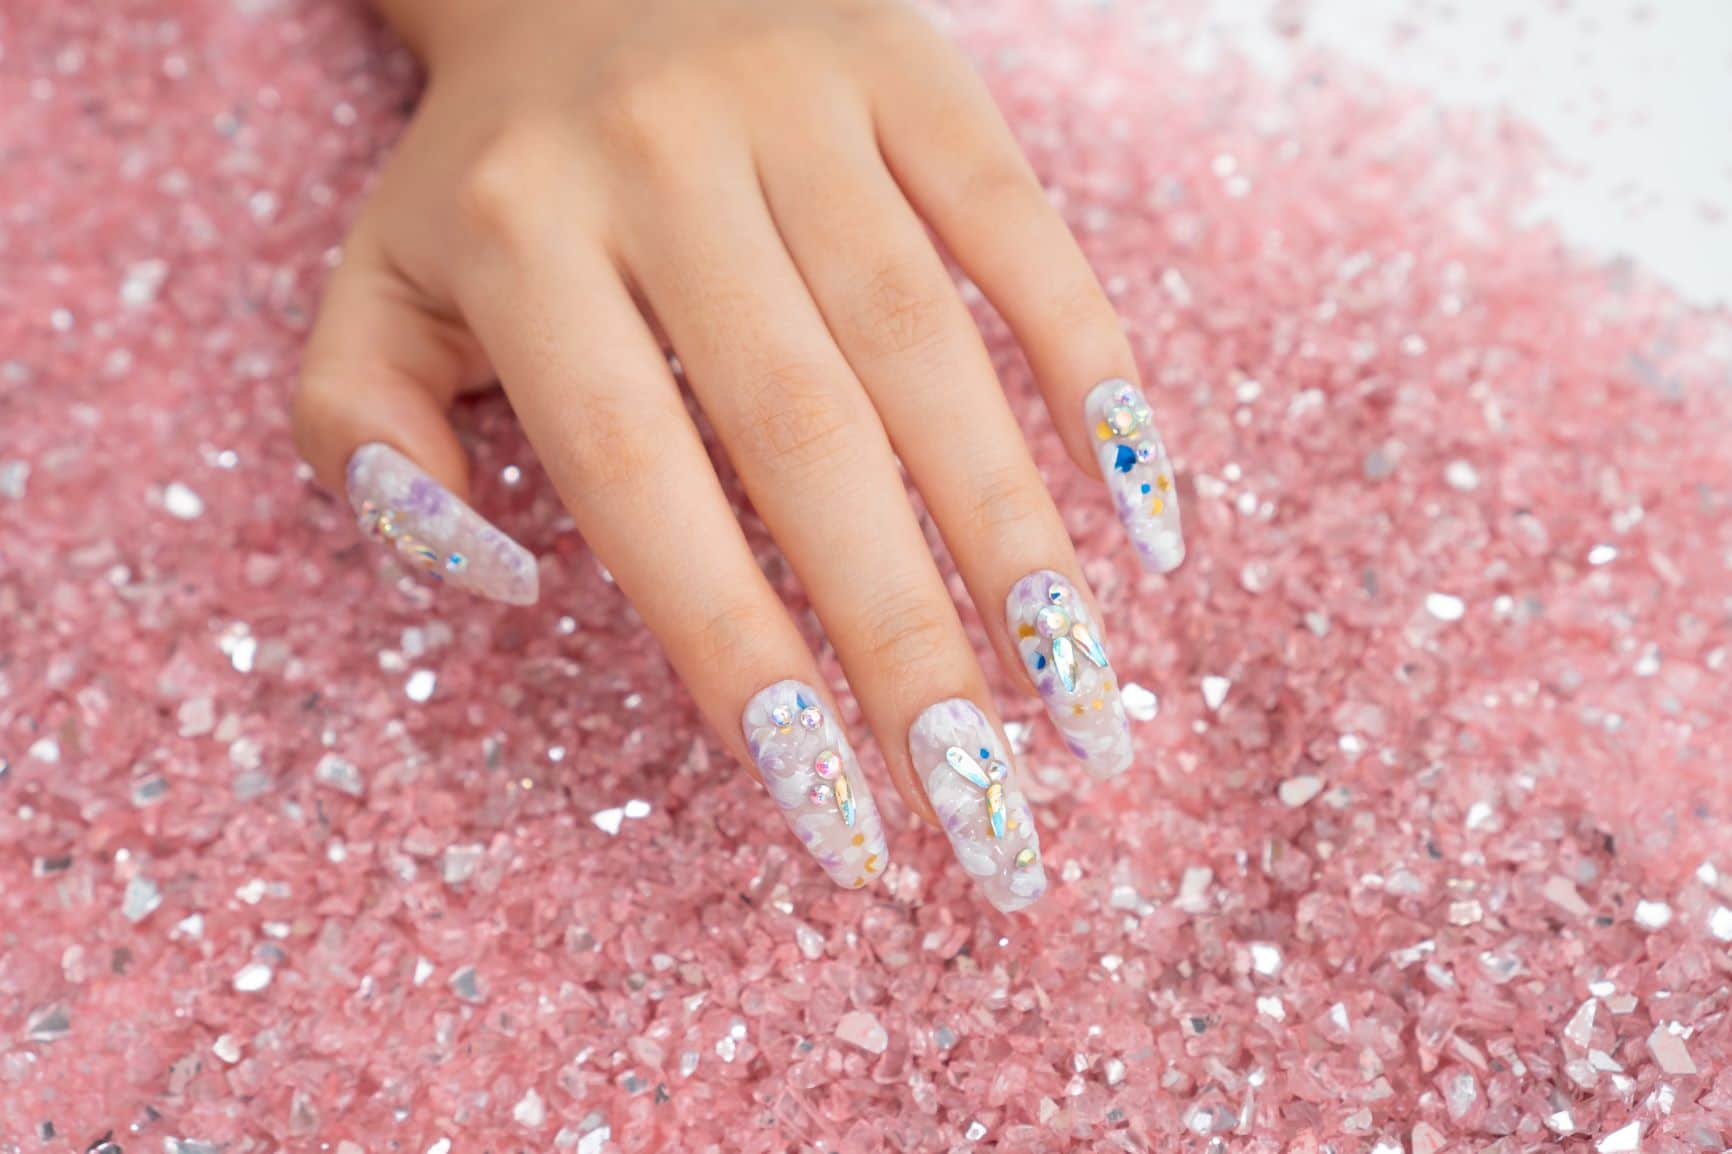 set of white and blue nails with decorations